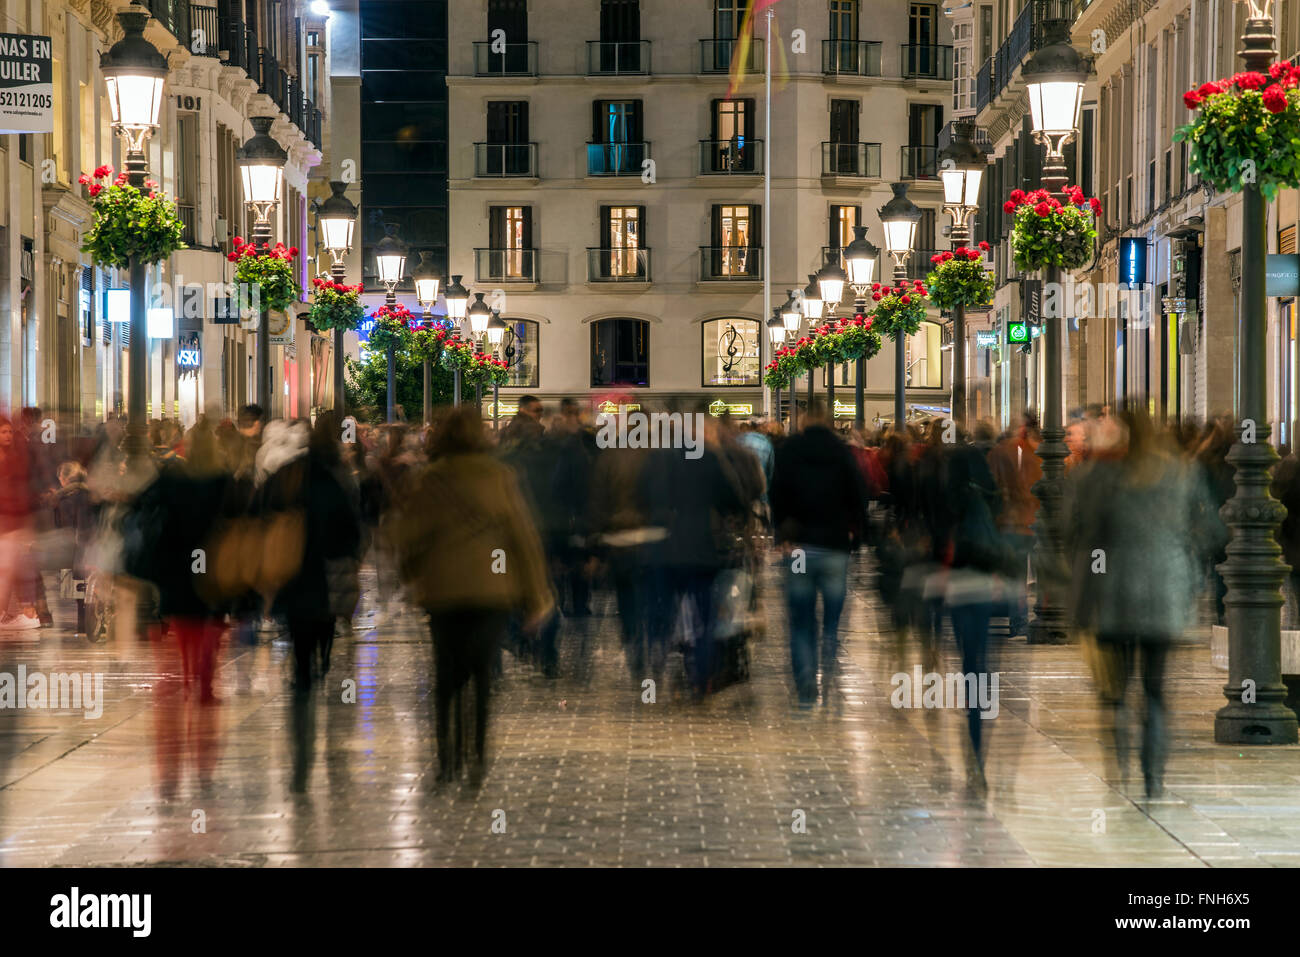 Night view of Calle Marques de Larios pedestrian street, Malaga, Andalusia, Spain - Stock Image